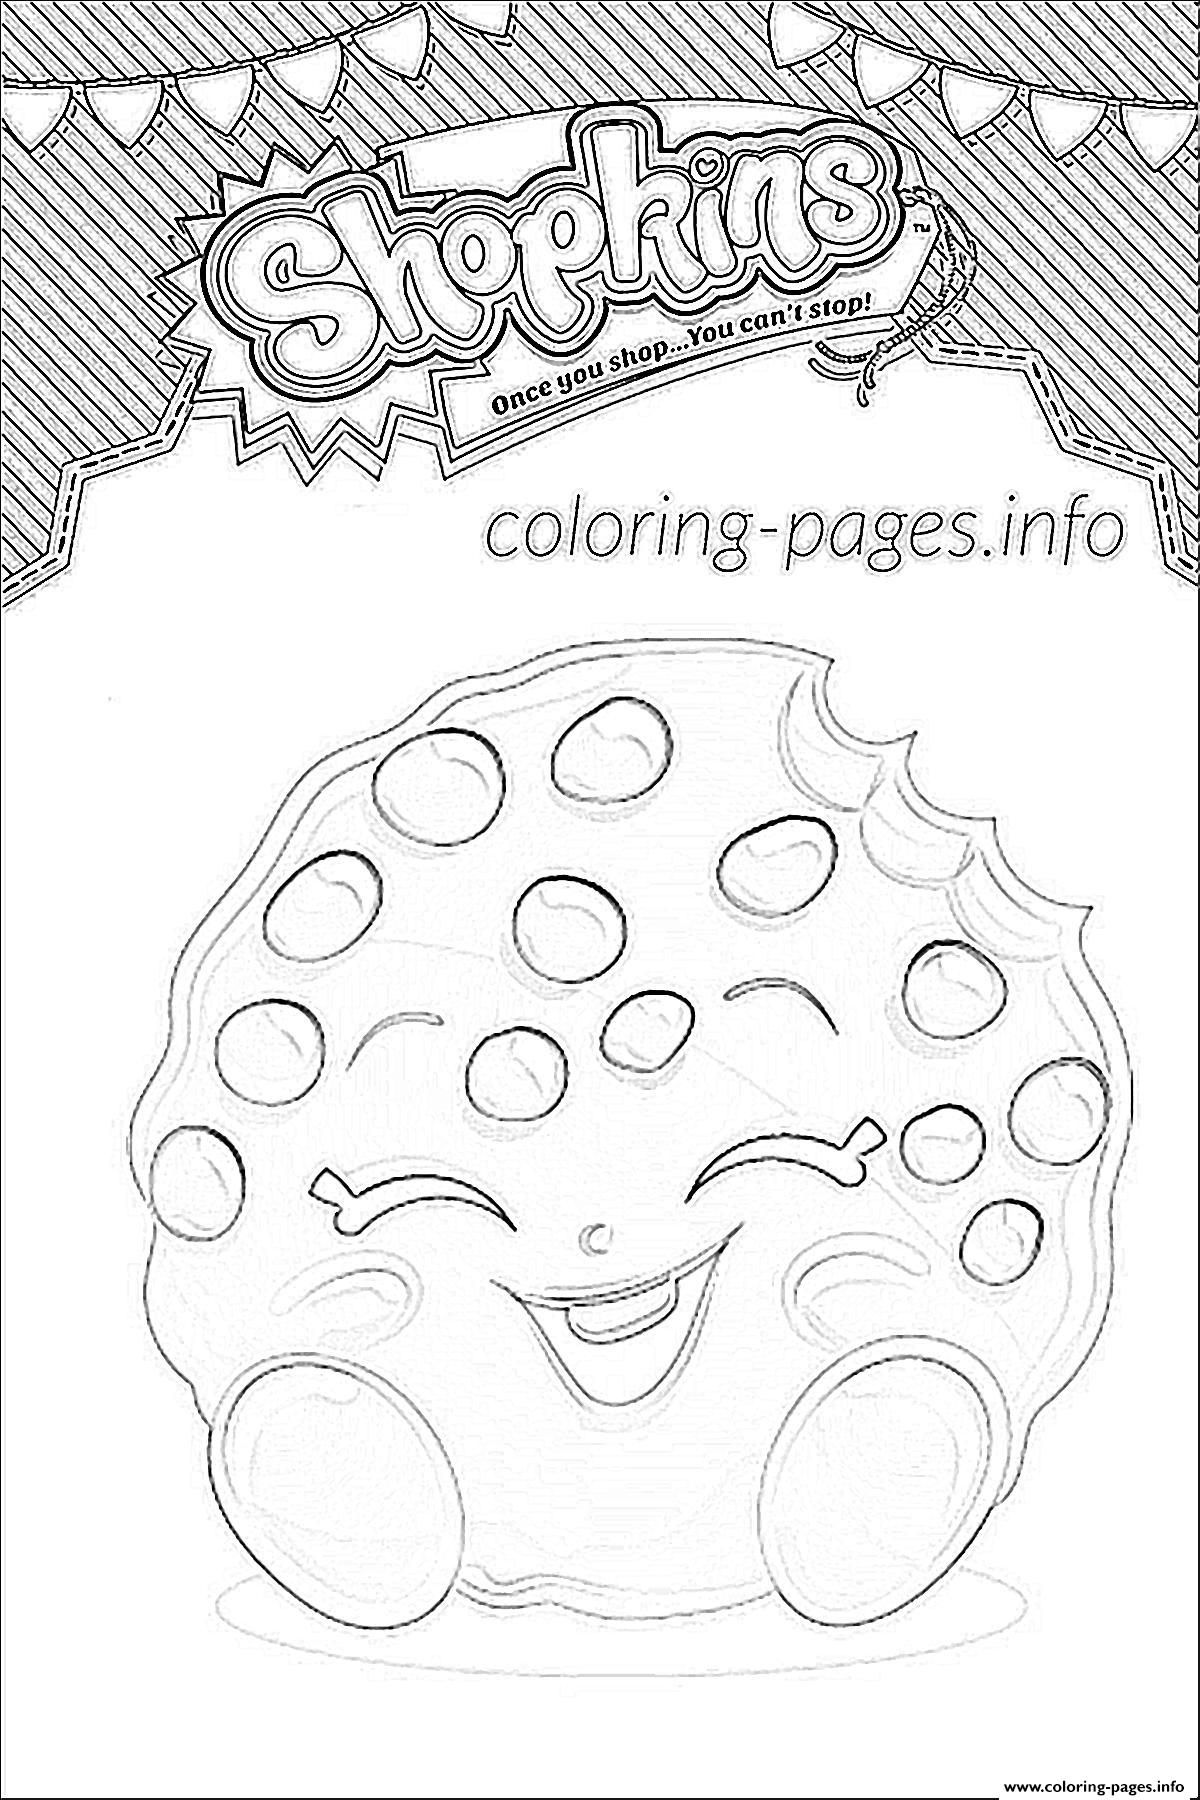 Print shopkins kooky cookie shoppies coloring pages G